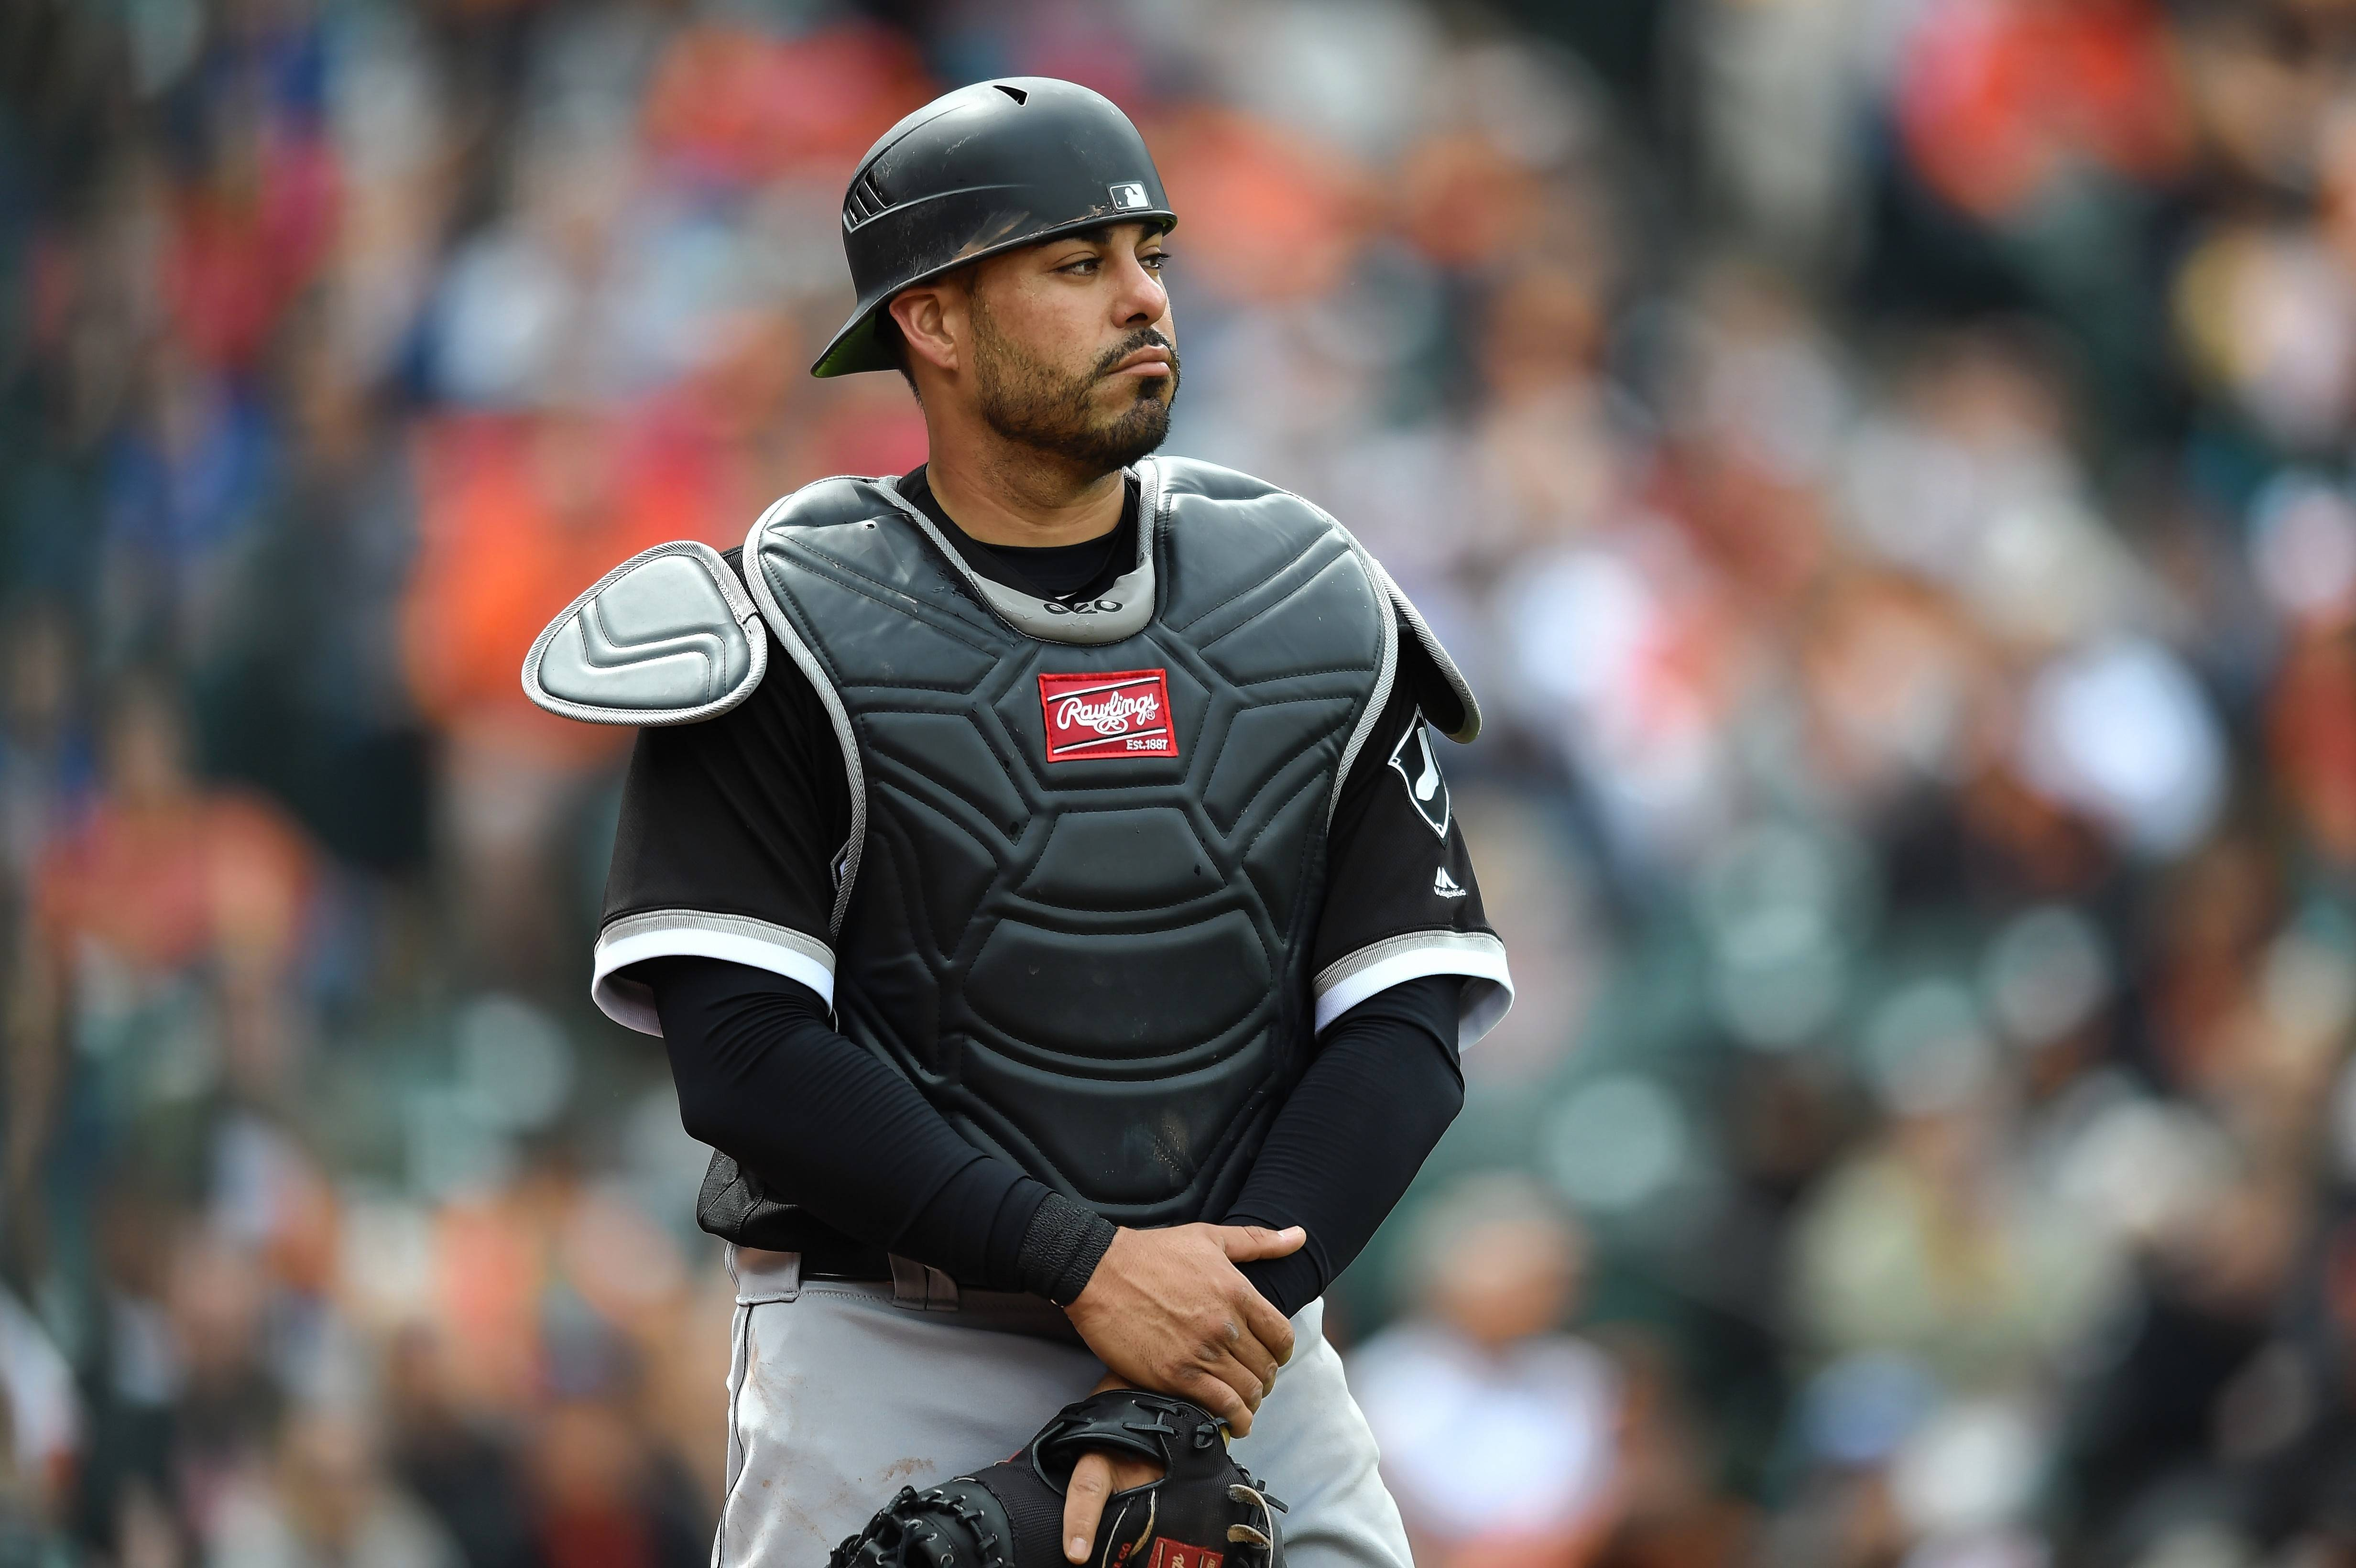 Chicago White Sox decline $3 million option on Soto